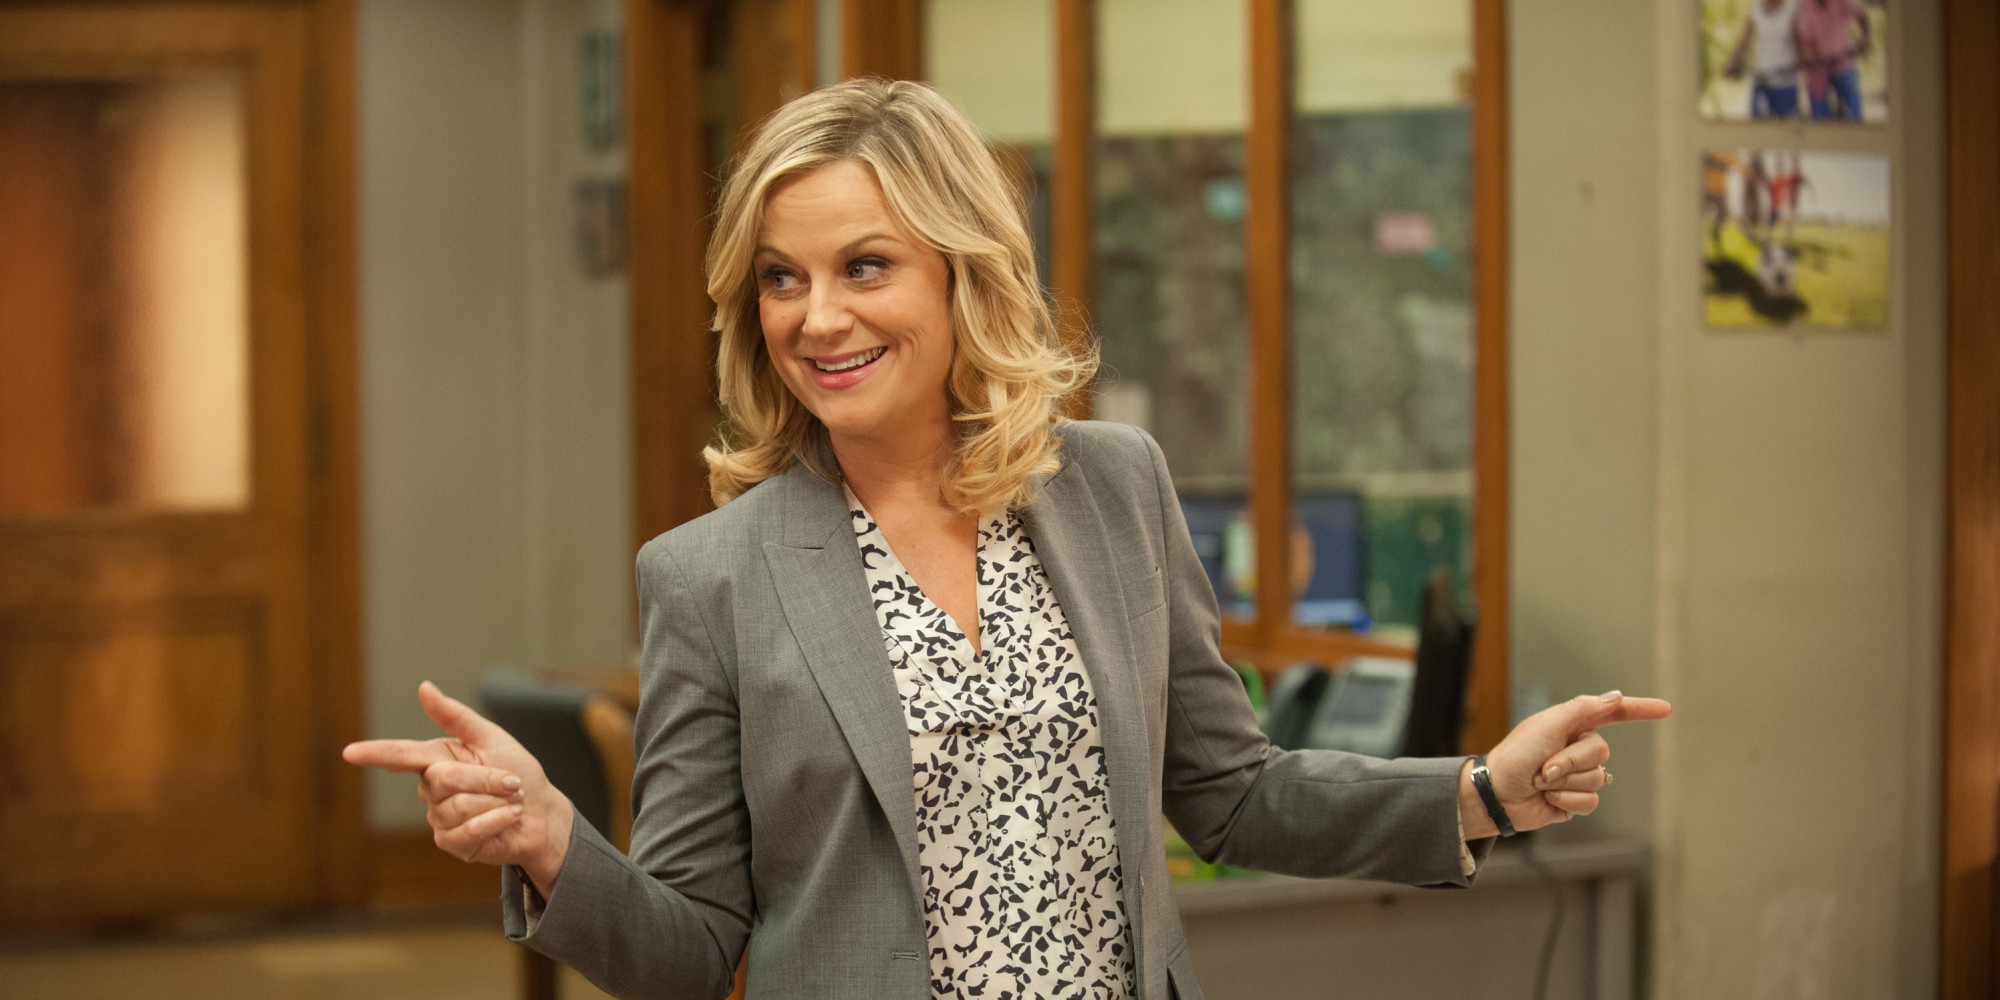 Our girl, Leslie Knope.